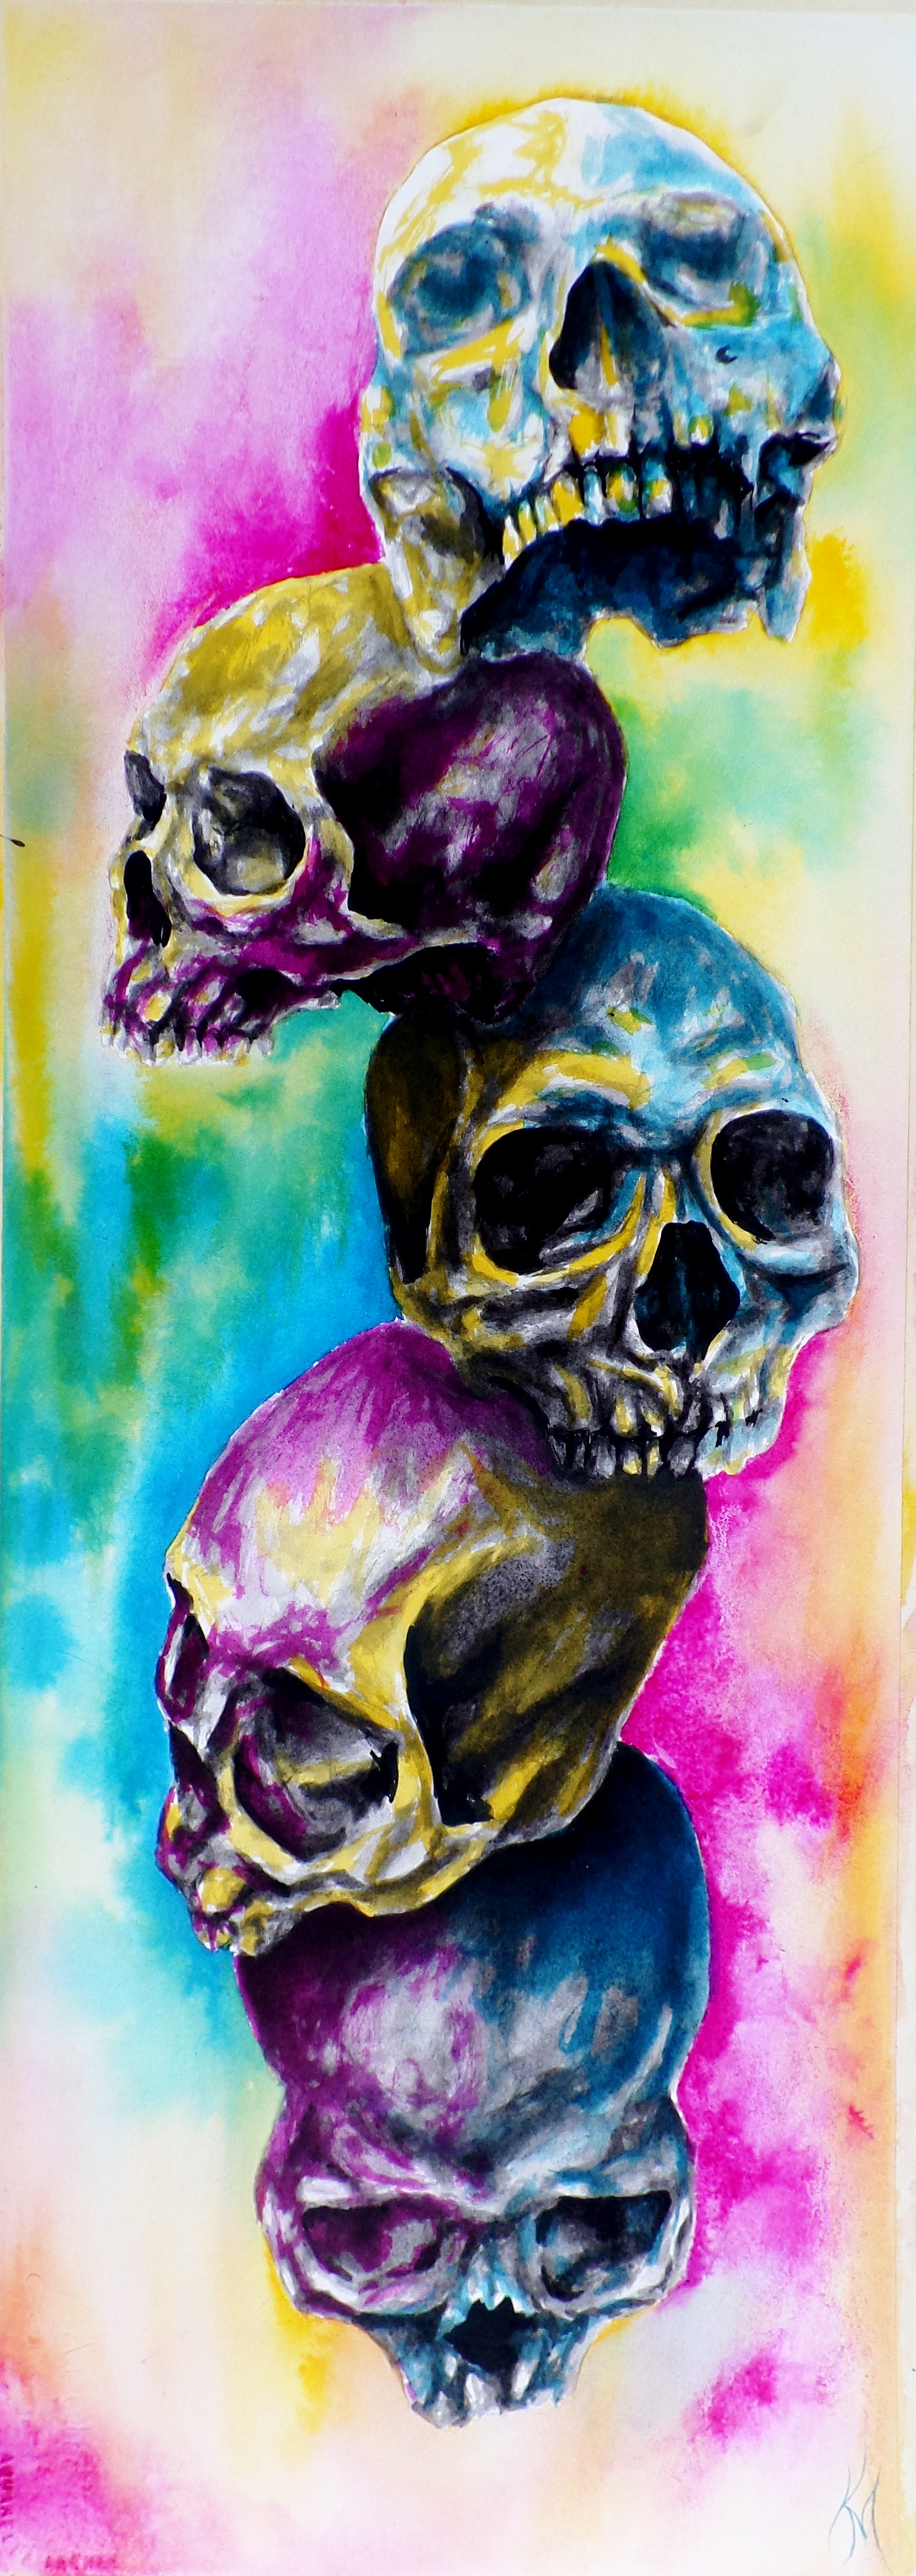 Lion Live Wallpaper Iphone Colorful Skulls On Behance